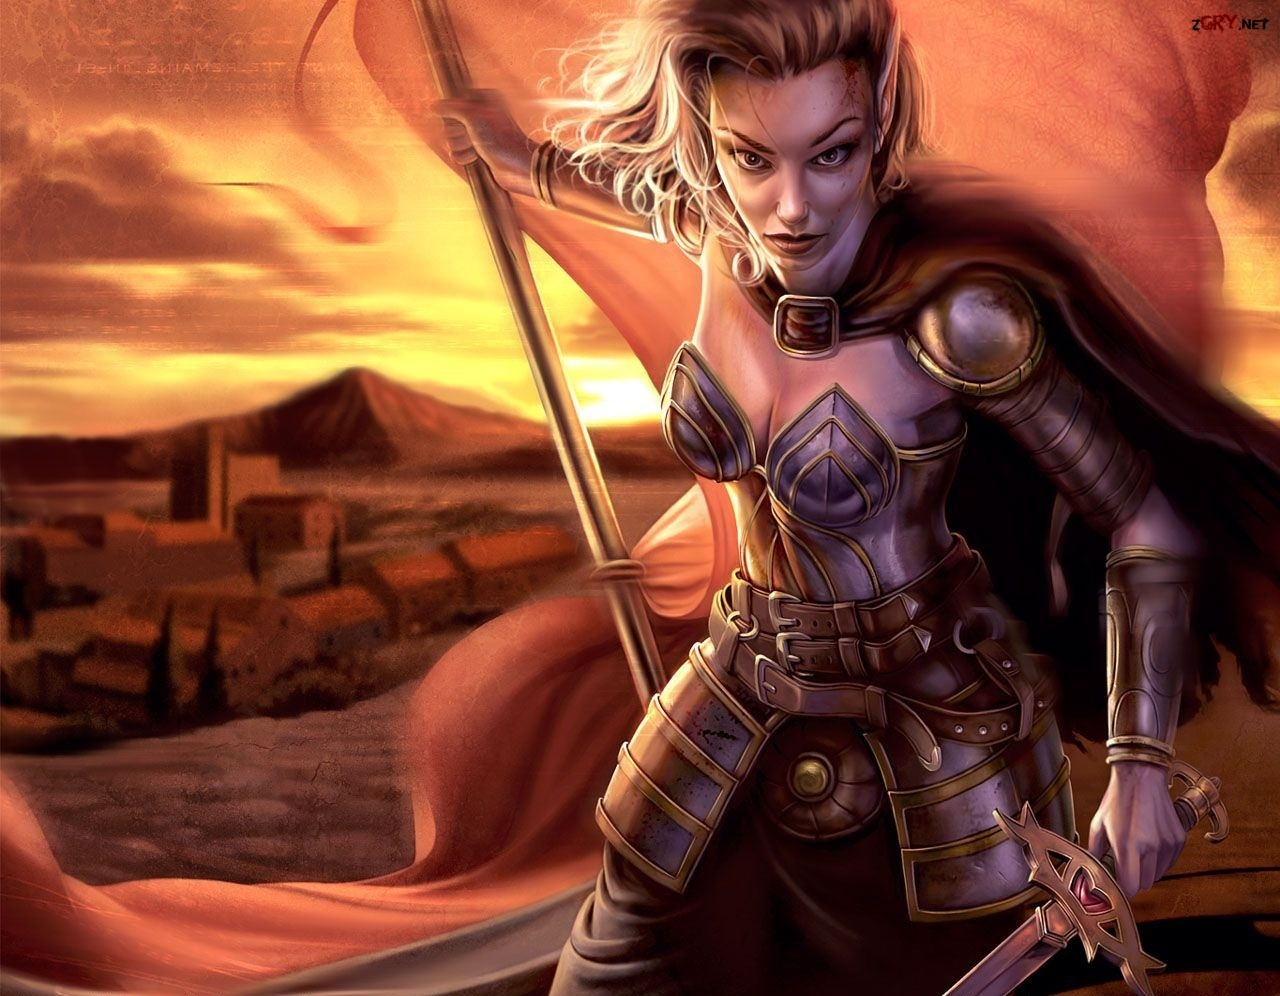 Gra, Neverwinter Nights, Wojowniczka, Lady Aribeth de Tylmarande